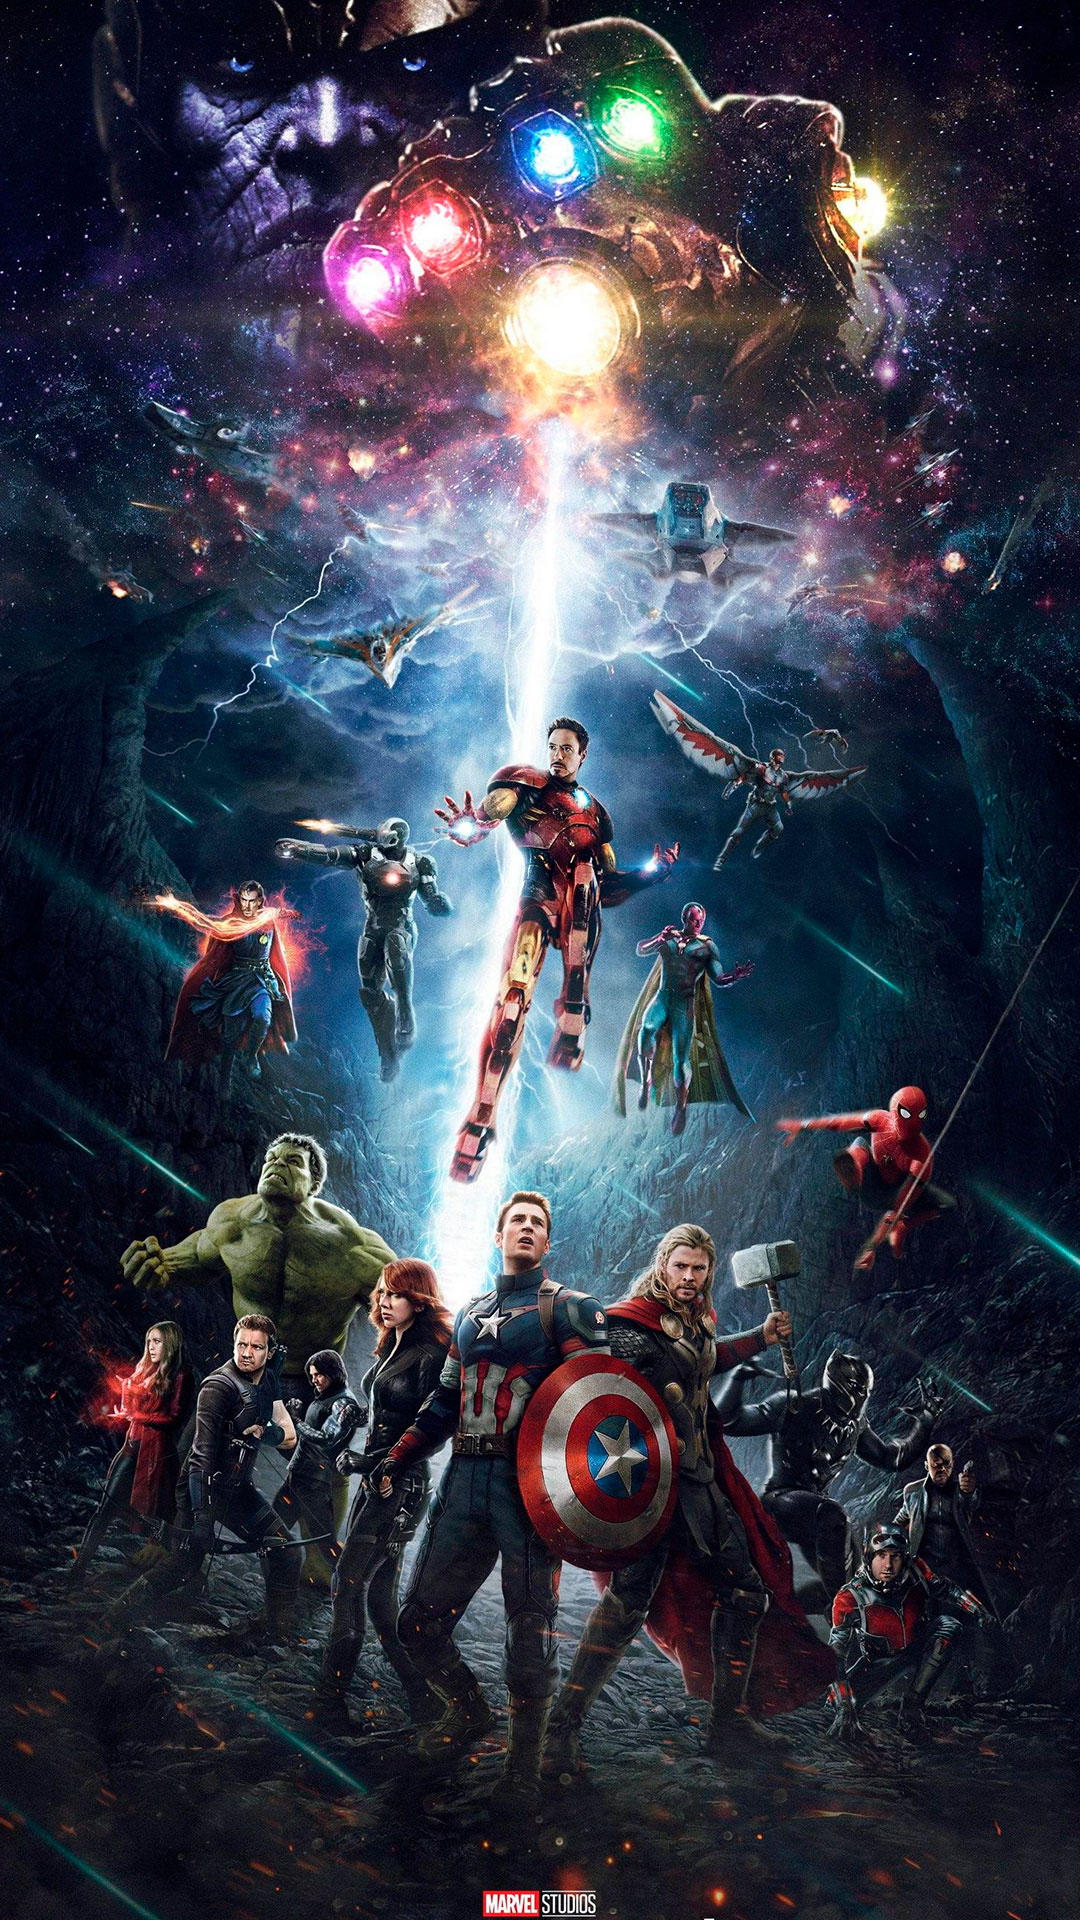 3d Thor Ragnarok Android Wallpaper Iphone Avengers Infinity War Avengers Avenger Avengers